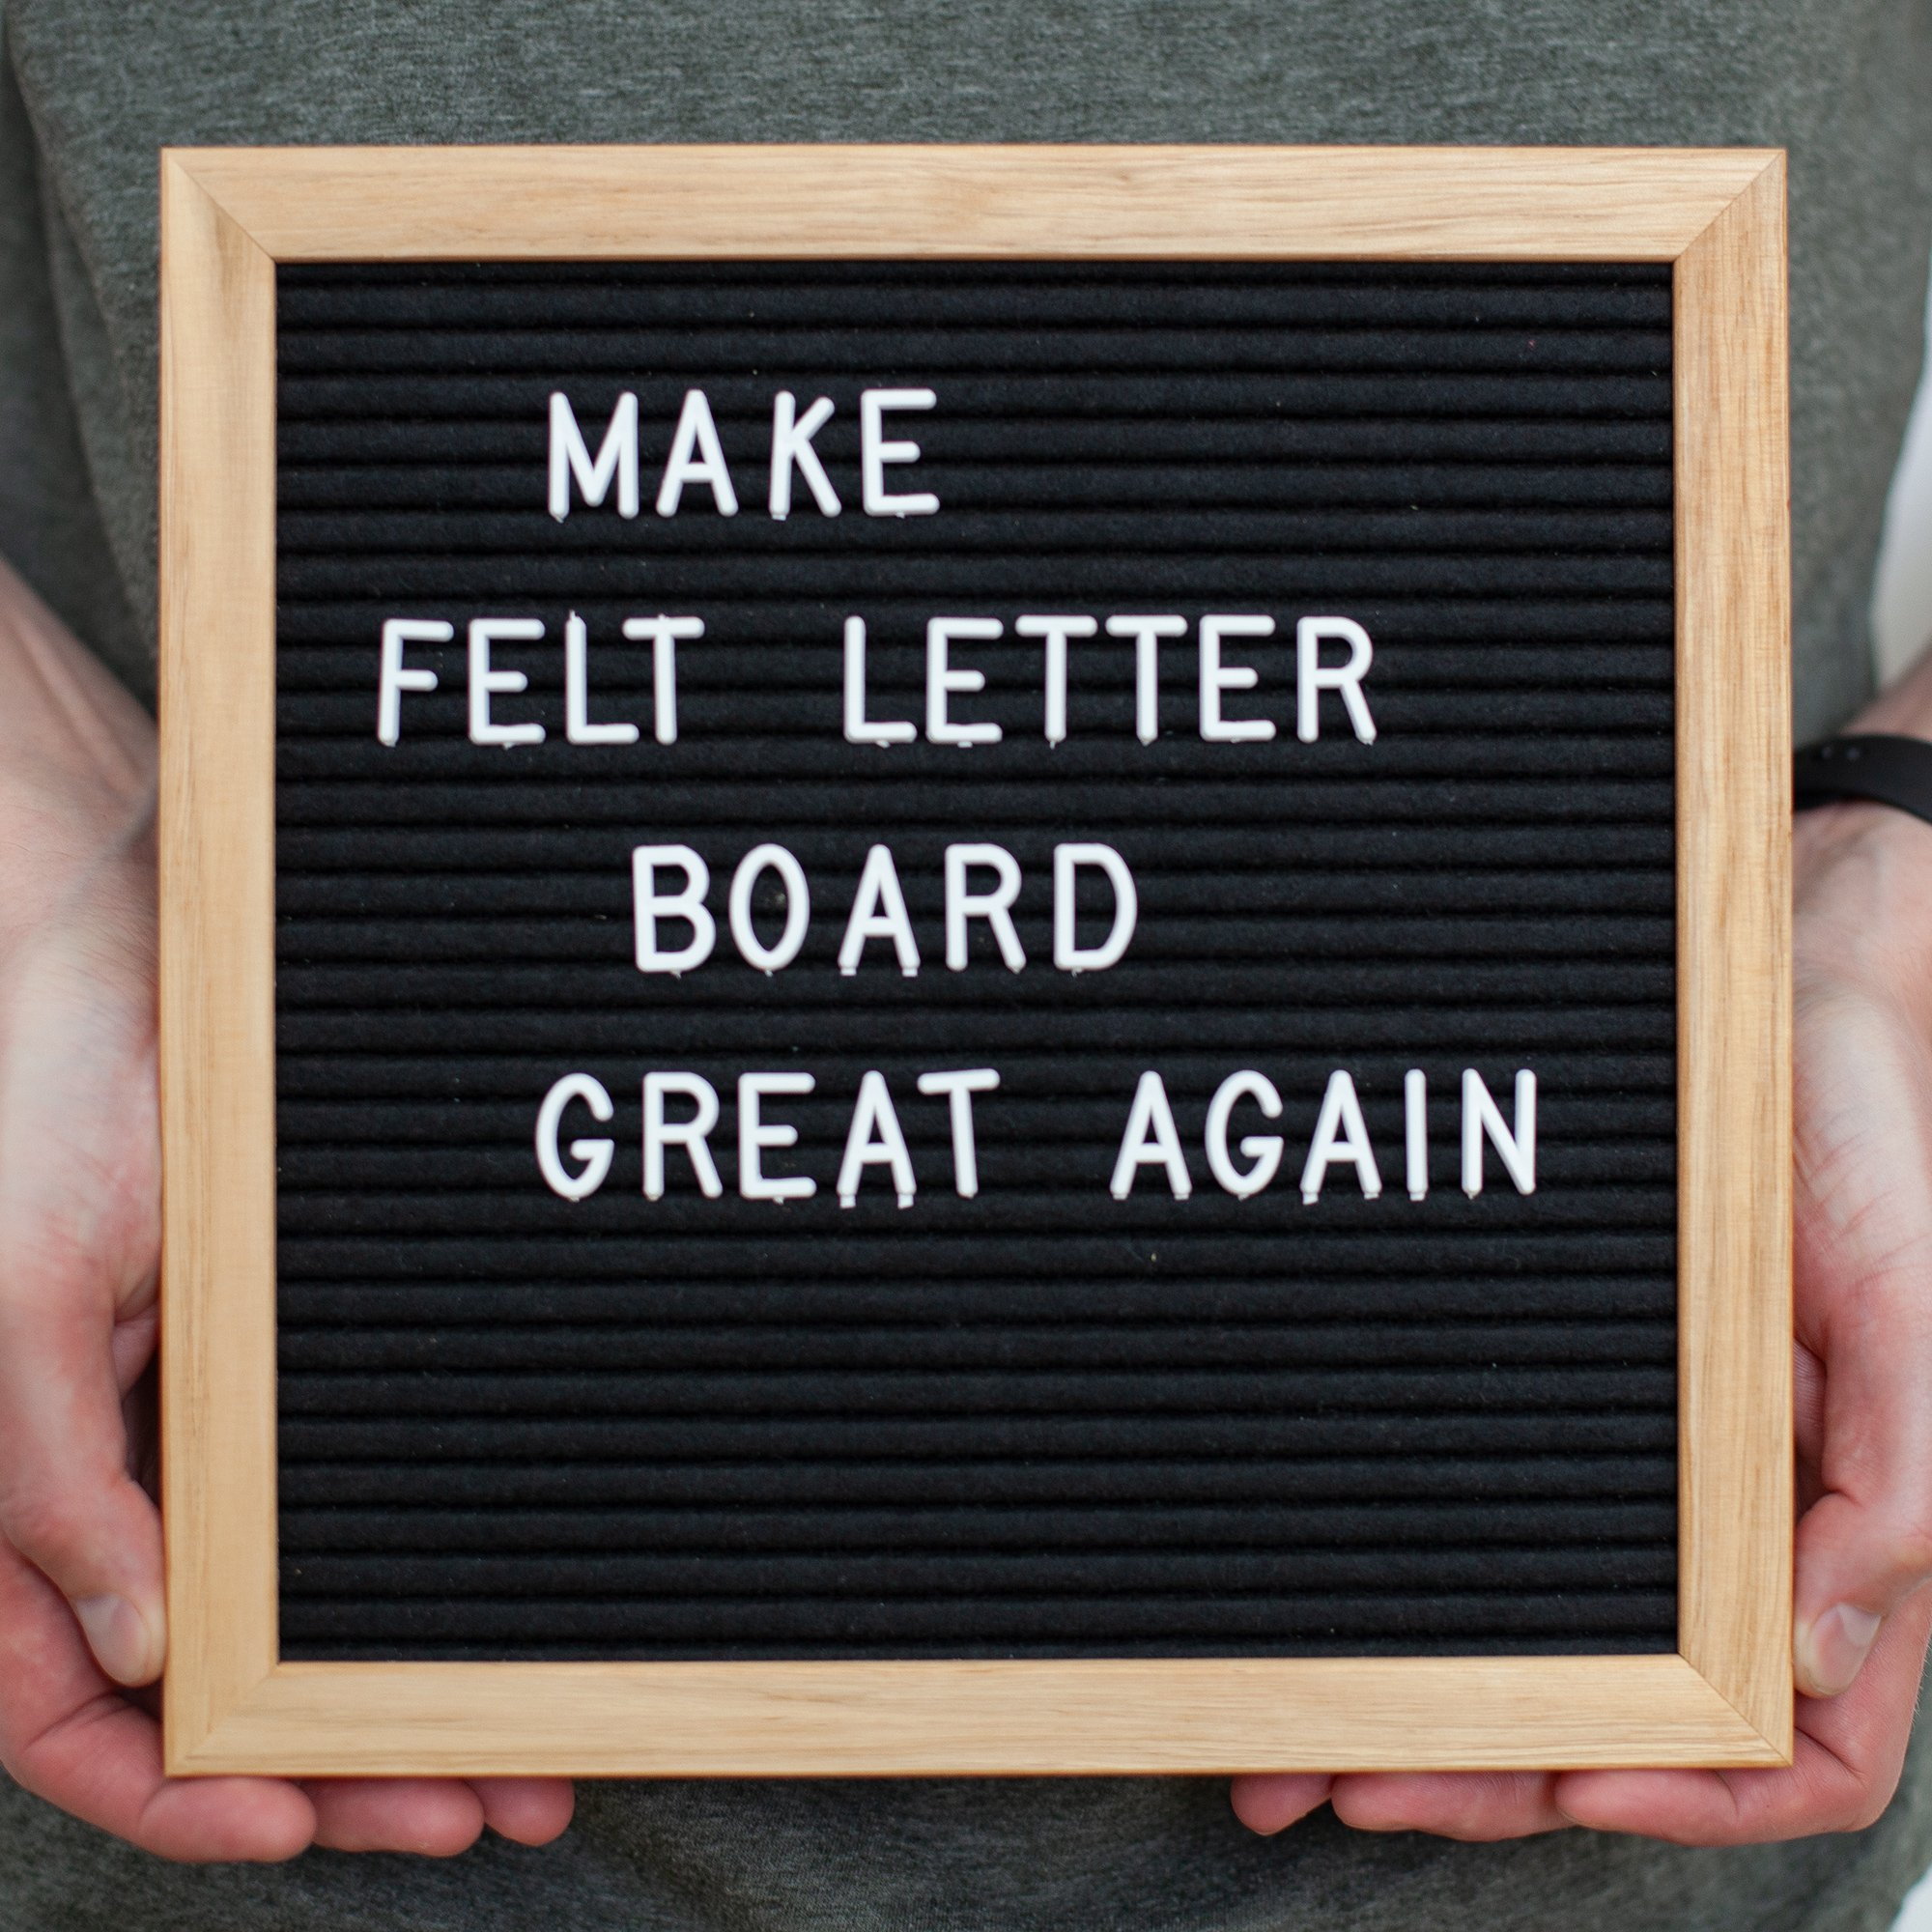 10x10 Inch Black Felt Letter Board - Plentiful 680 Changeable White Letters to Cover Multiple Usage Scenarios - Durable Oak Frame by DraiviMedia (Image #2)